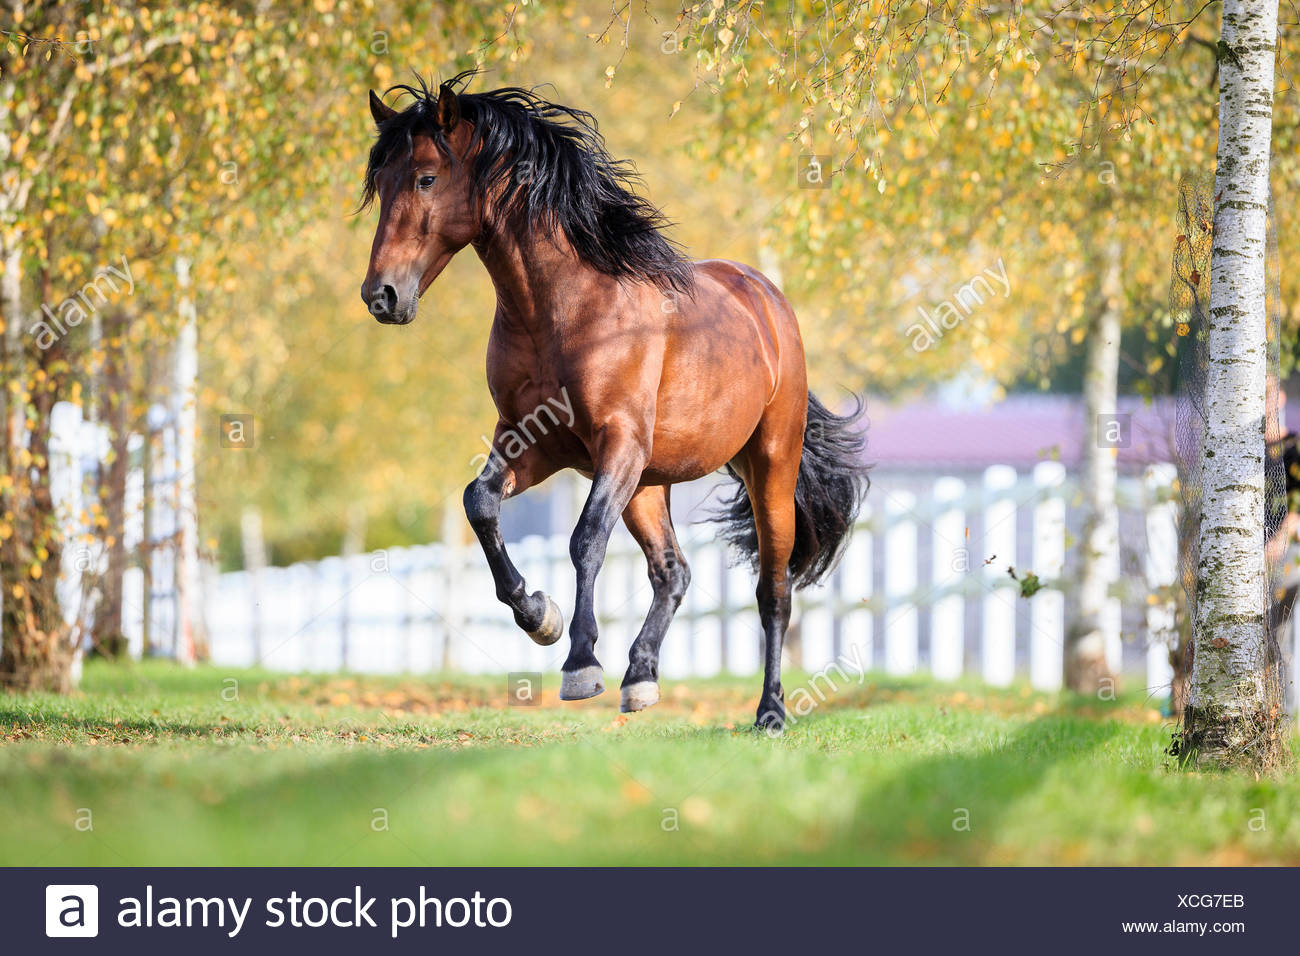 Pura Raza Espanola, Andalusian Bay gelding galloping pasture Stock Photo